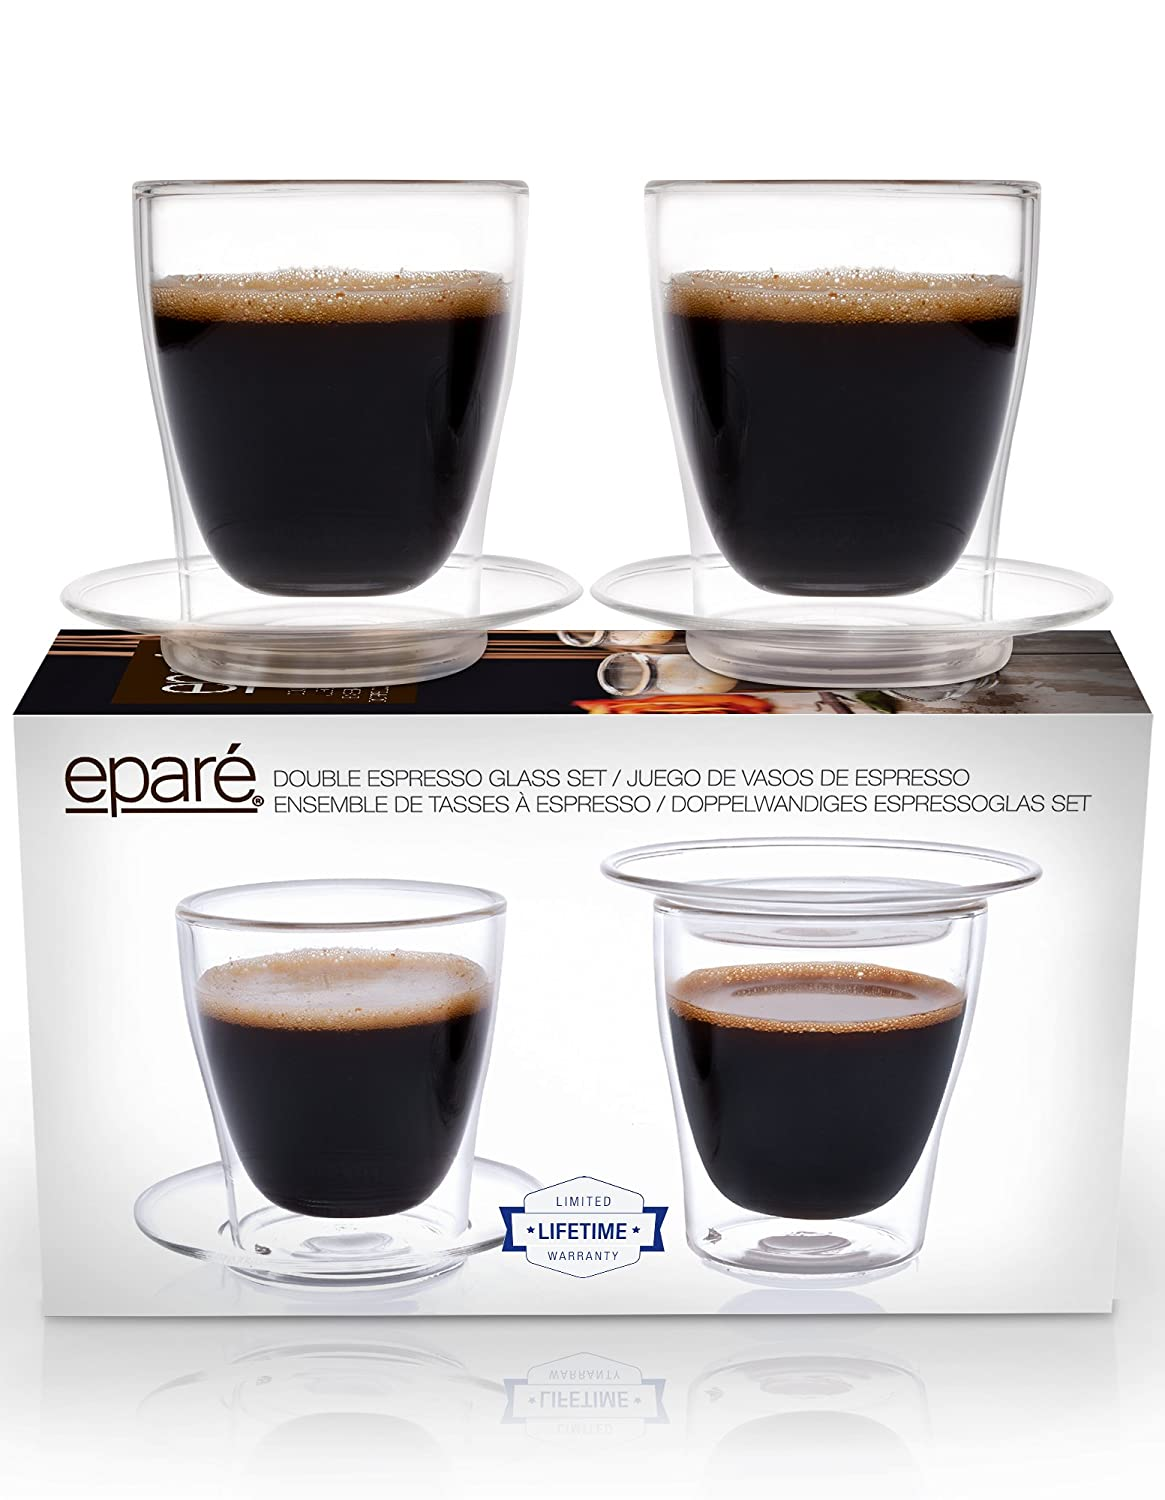 Eparé Espresso Cups, Insulated Glass Demitasse Lid & Saucer Set (4 oz, 120 ml) – Double Wall Thermal Tumbler Cup – Mug for Drinking Tea, Latte, Lungo, or Cappuccino – 2 Glasses or Cappuccino - 2 Glasses